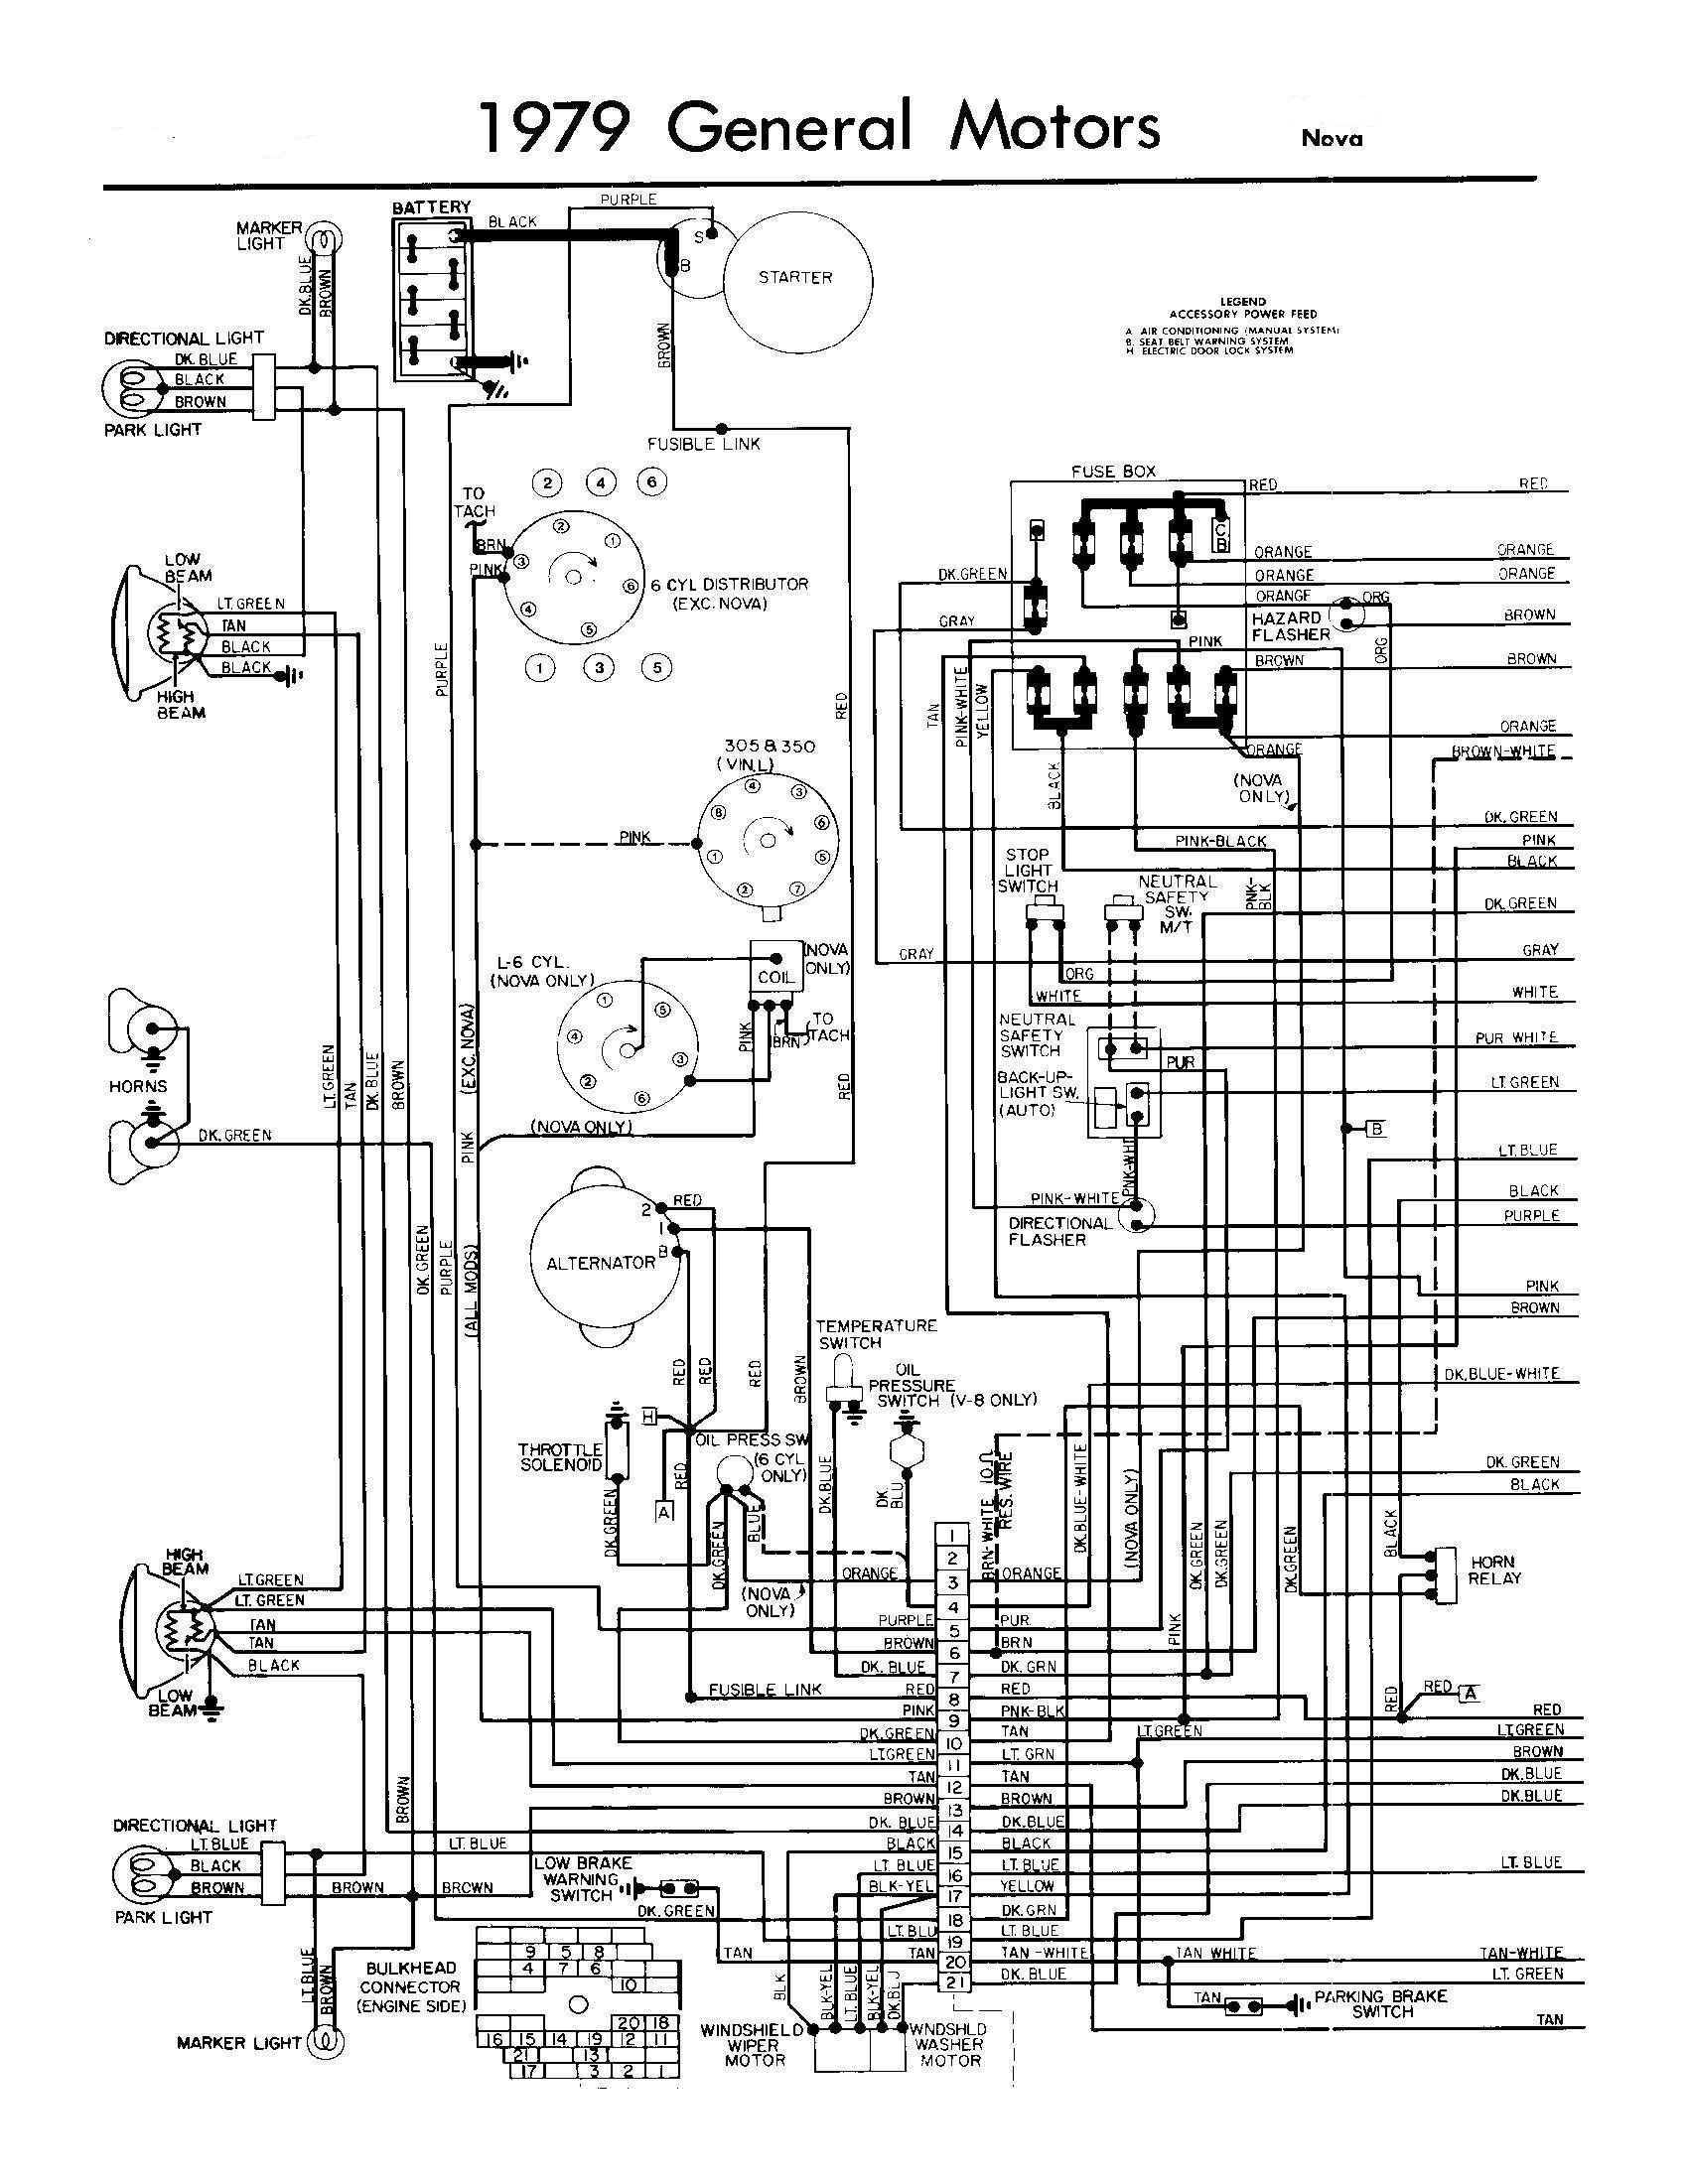 1985 Dodge Ram Fuse Box Diagram Wiring Library 78 Truck Nova Electrical Diagrams Rh Cytrus Co